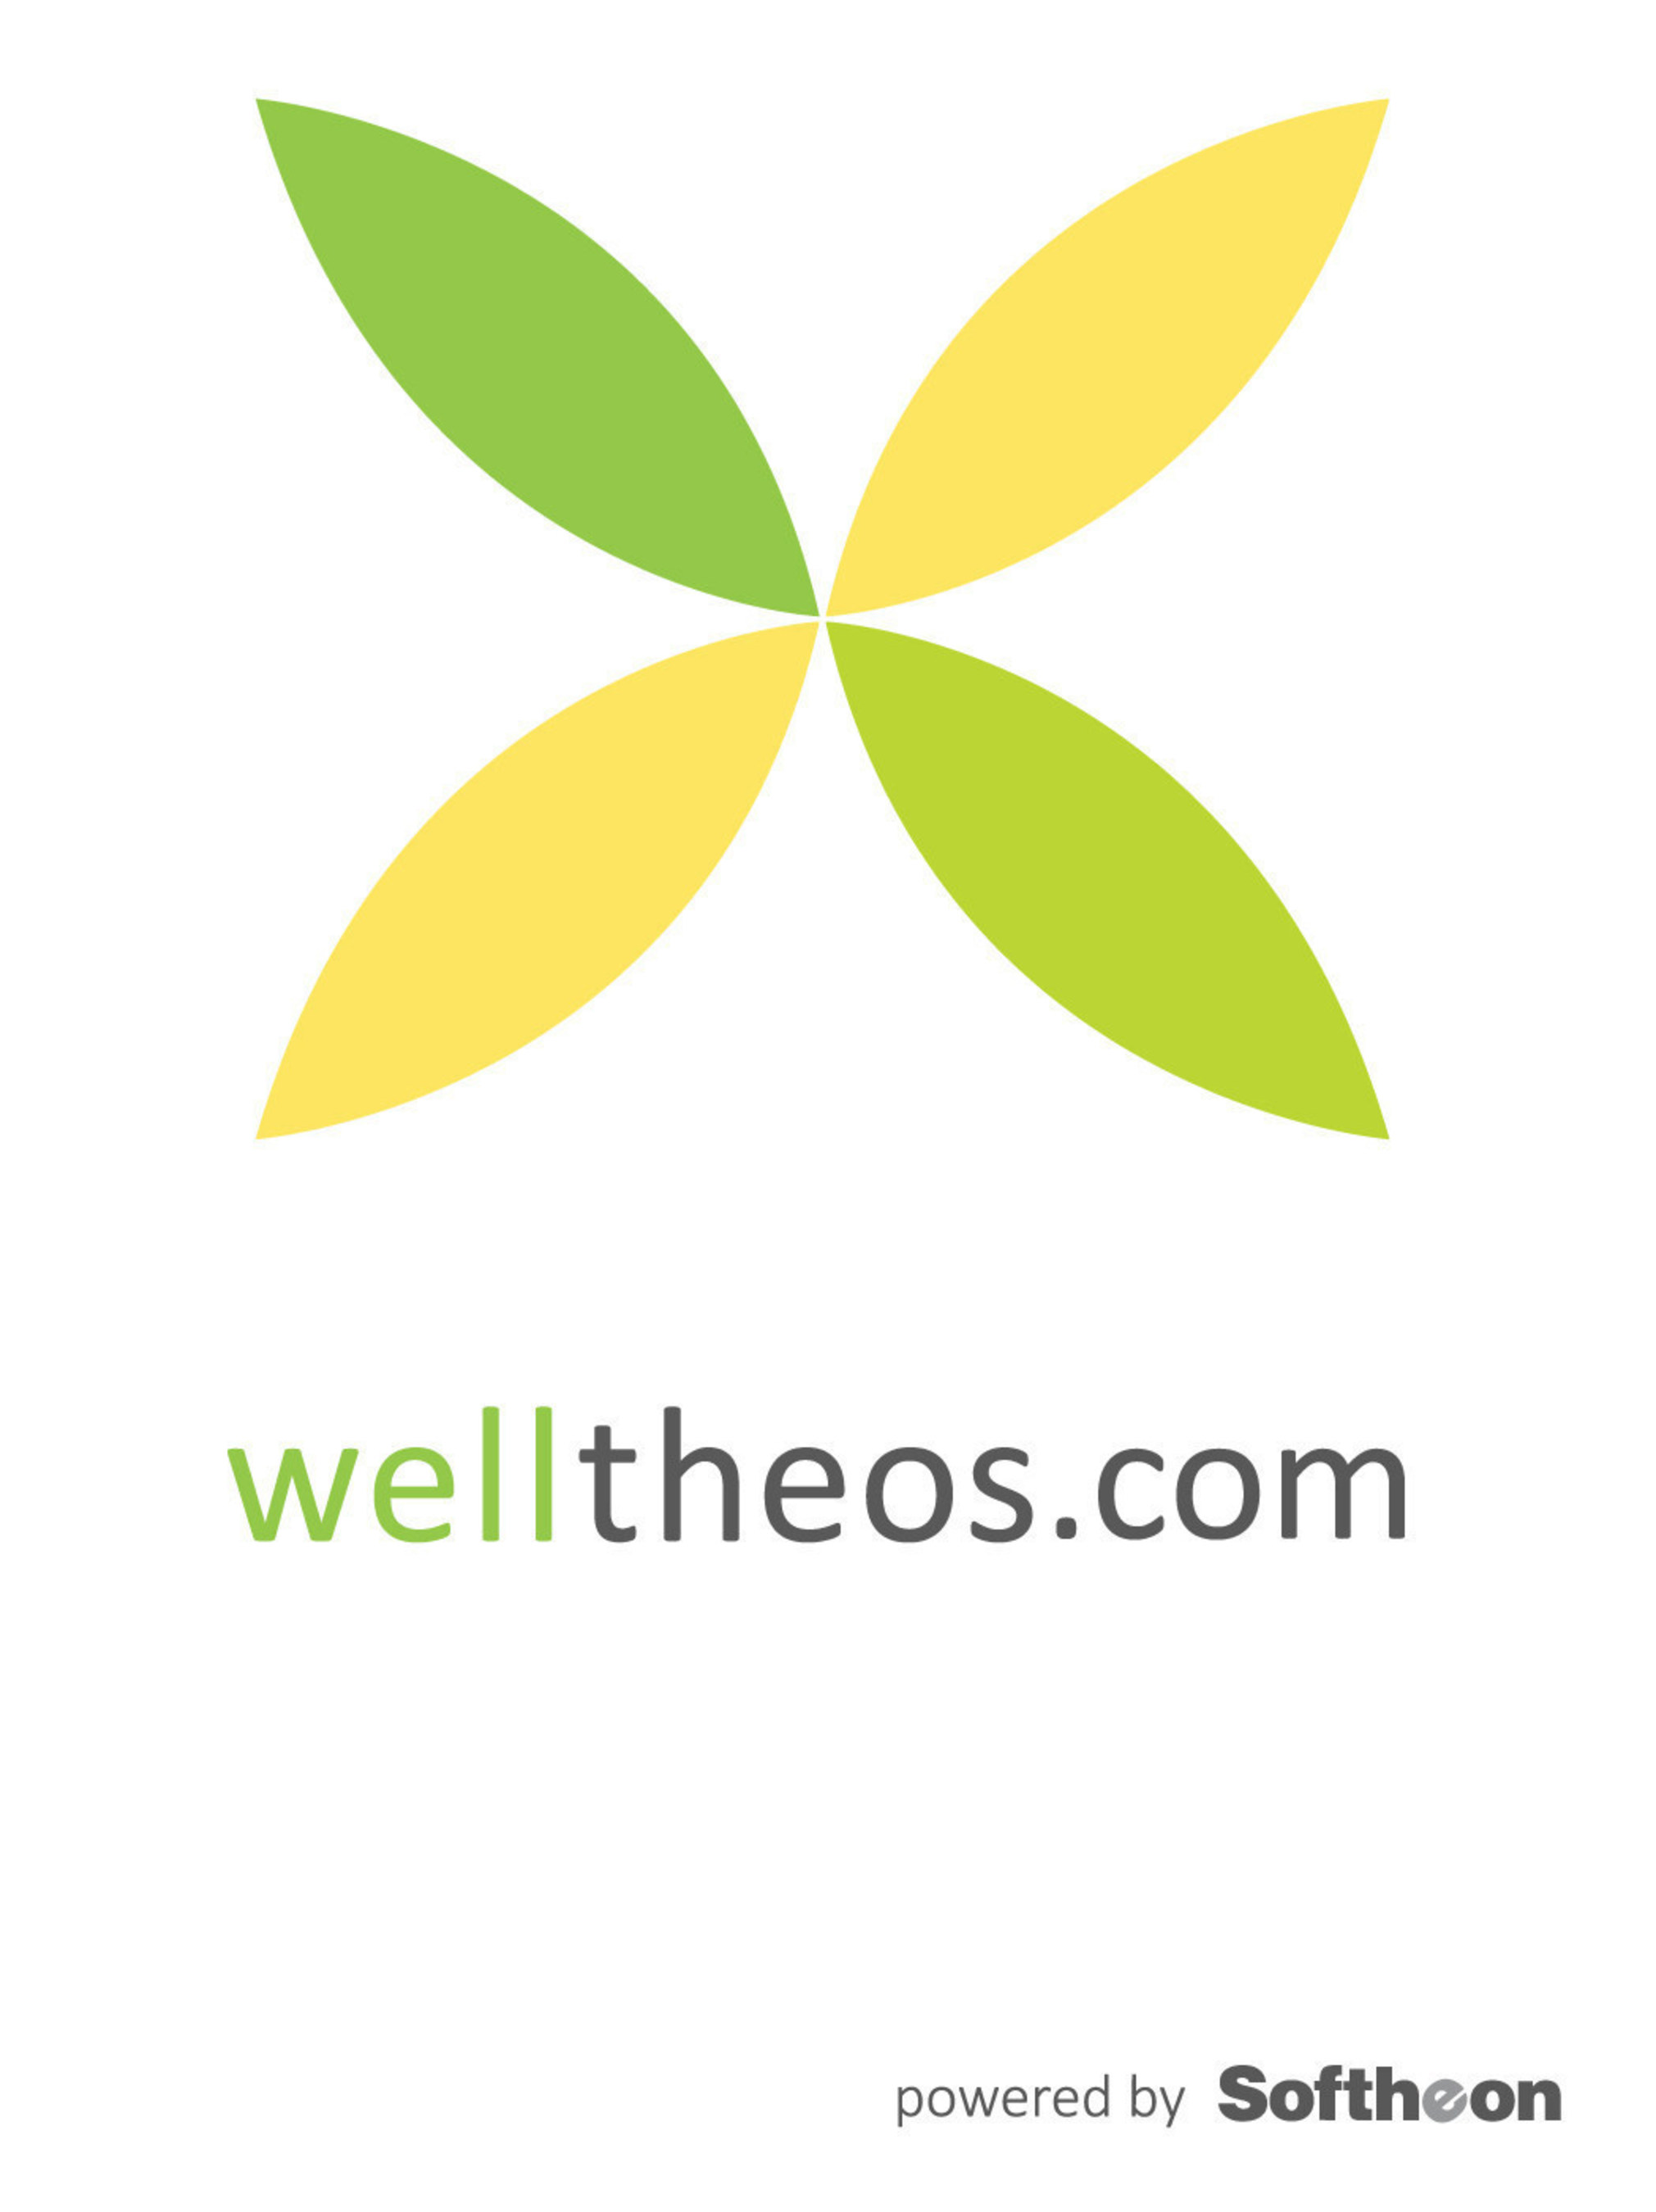 Welltheos Launches Configurable Branded Agency Portal